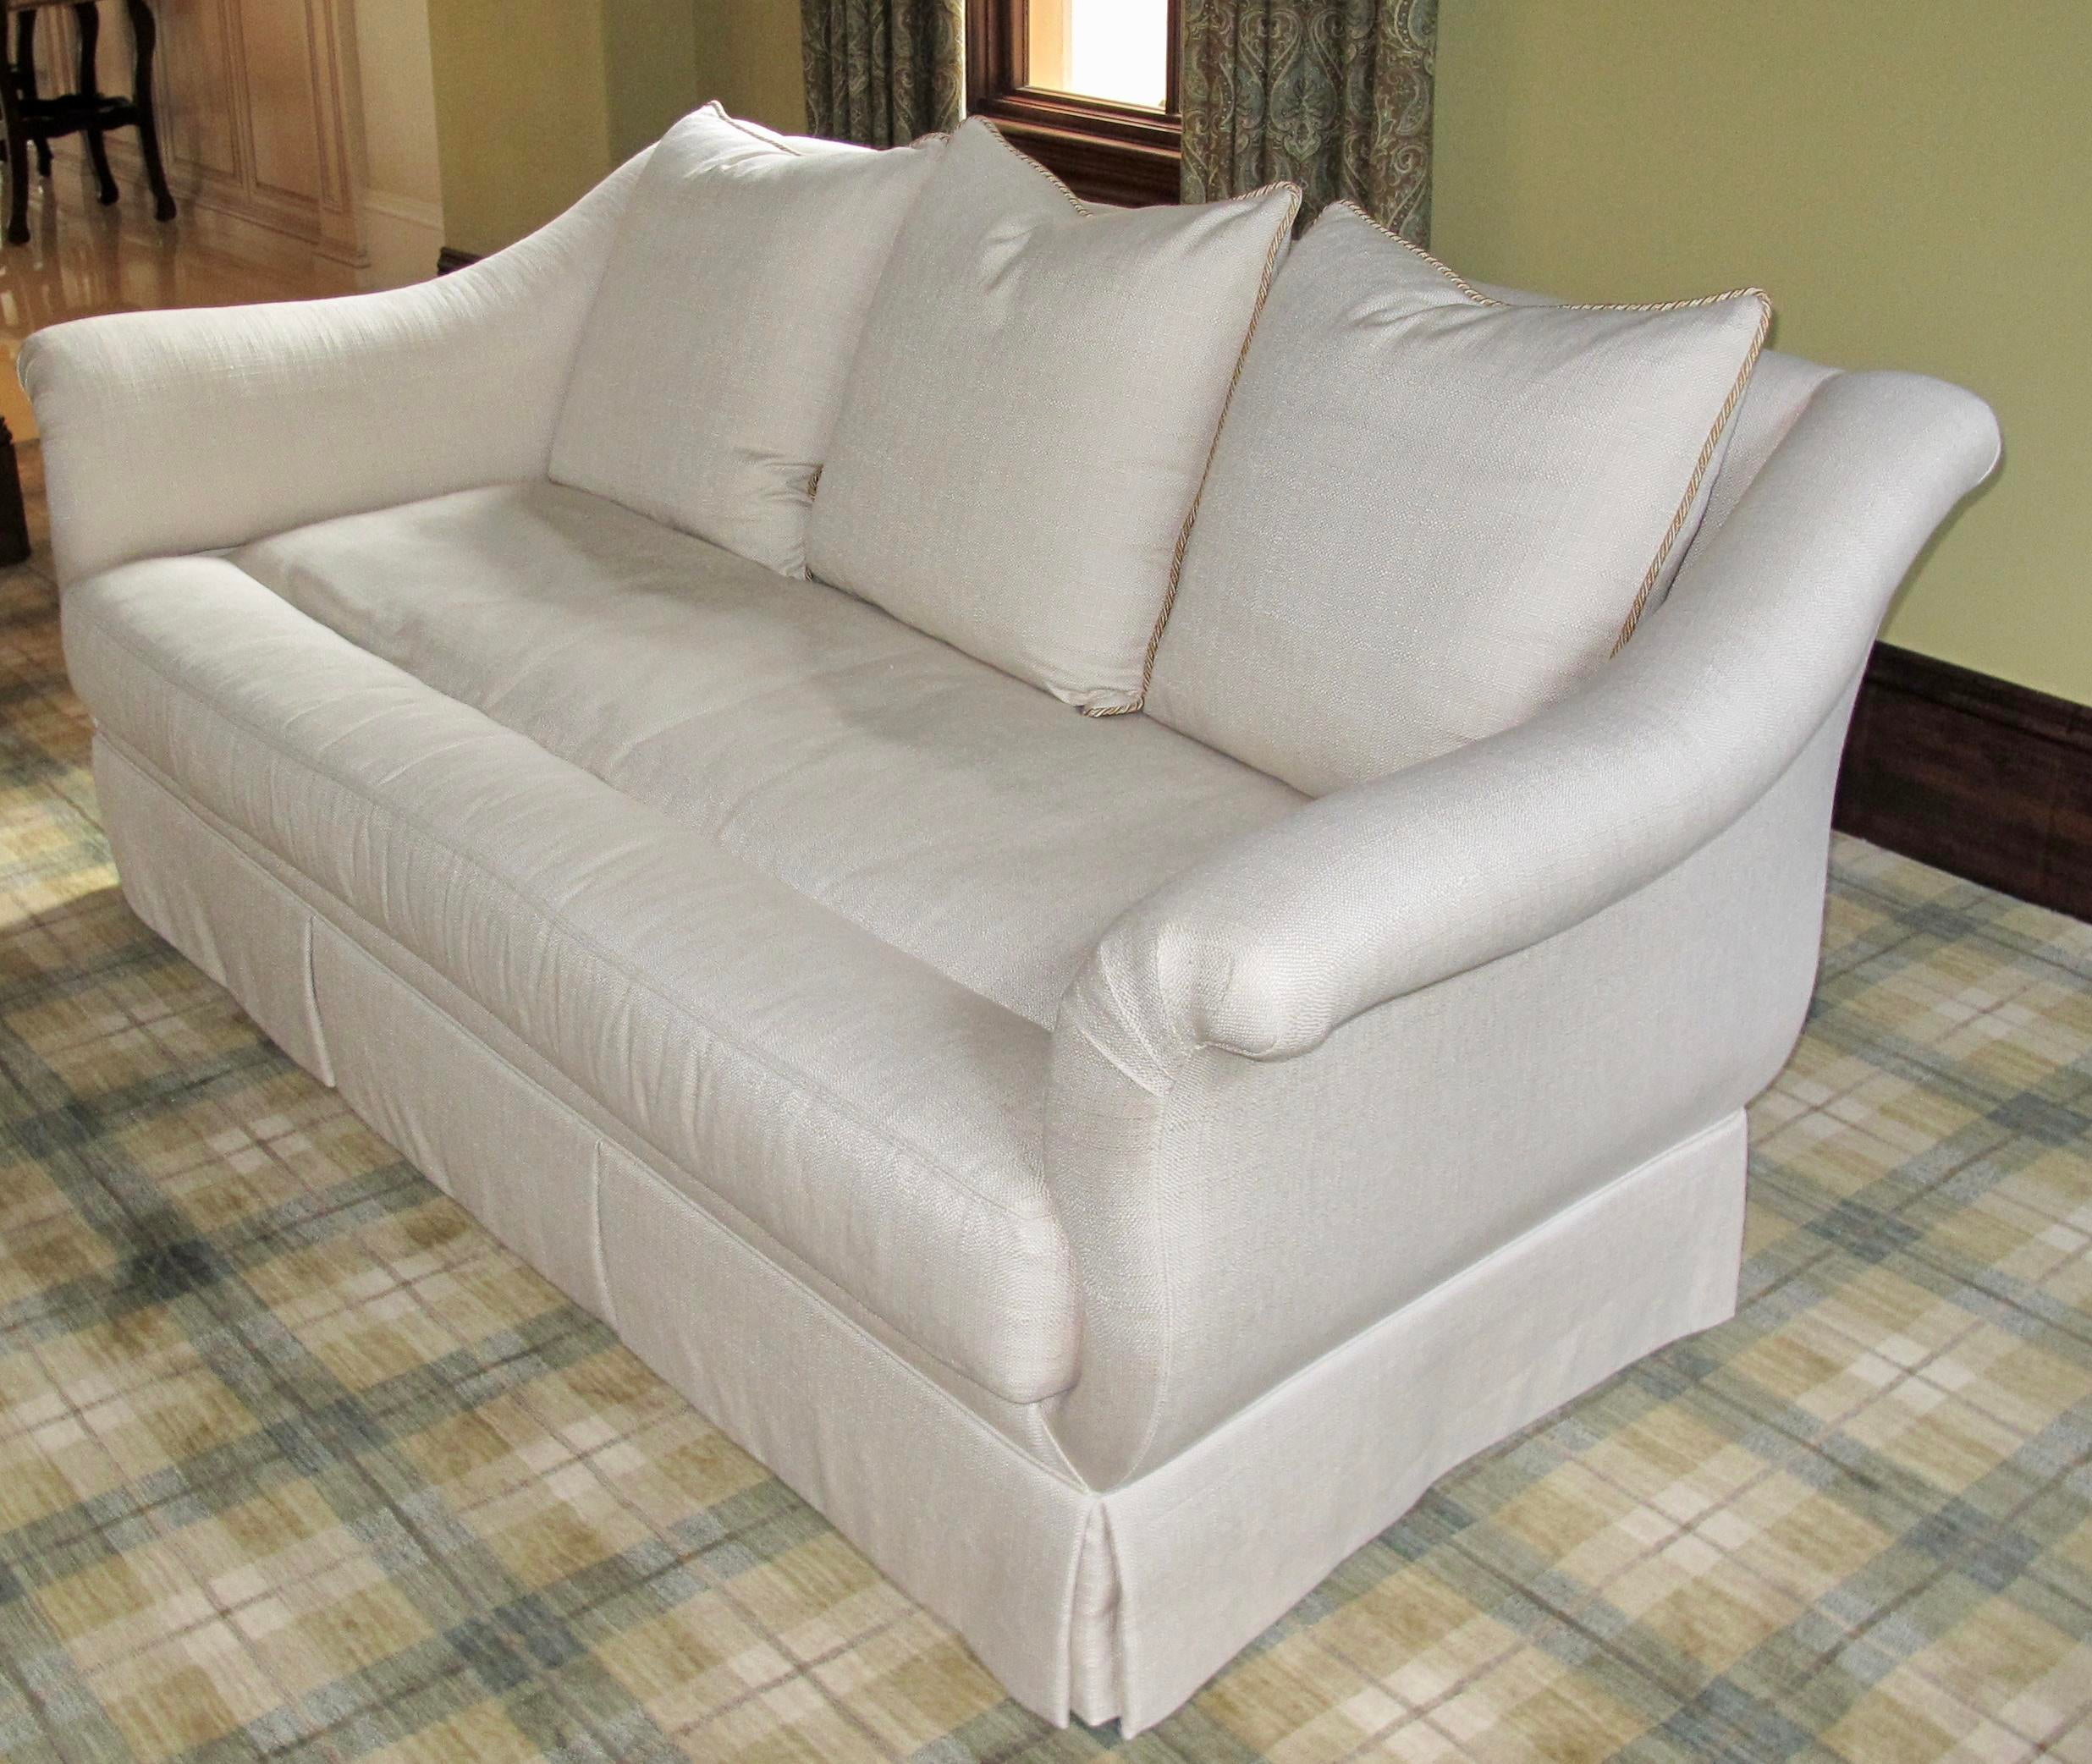 Ferguson Copeland Neutral Sofa For Sale In West Palm Image 6 Of 7